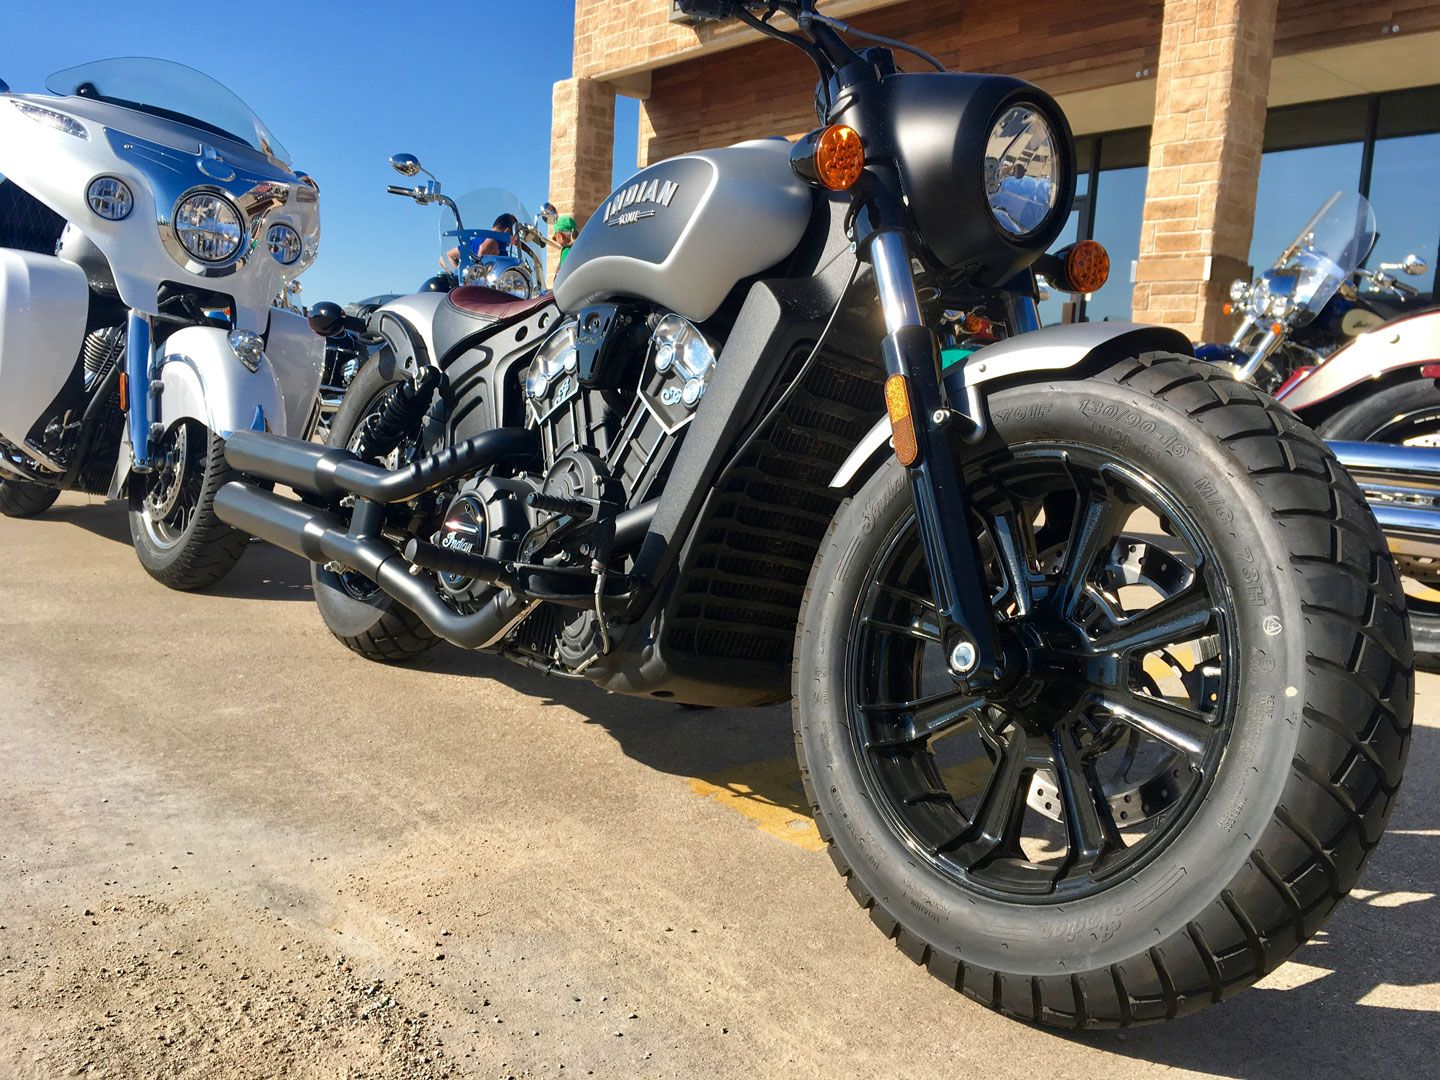 2018 Indian Scout and Bobber Review on Countersteer